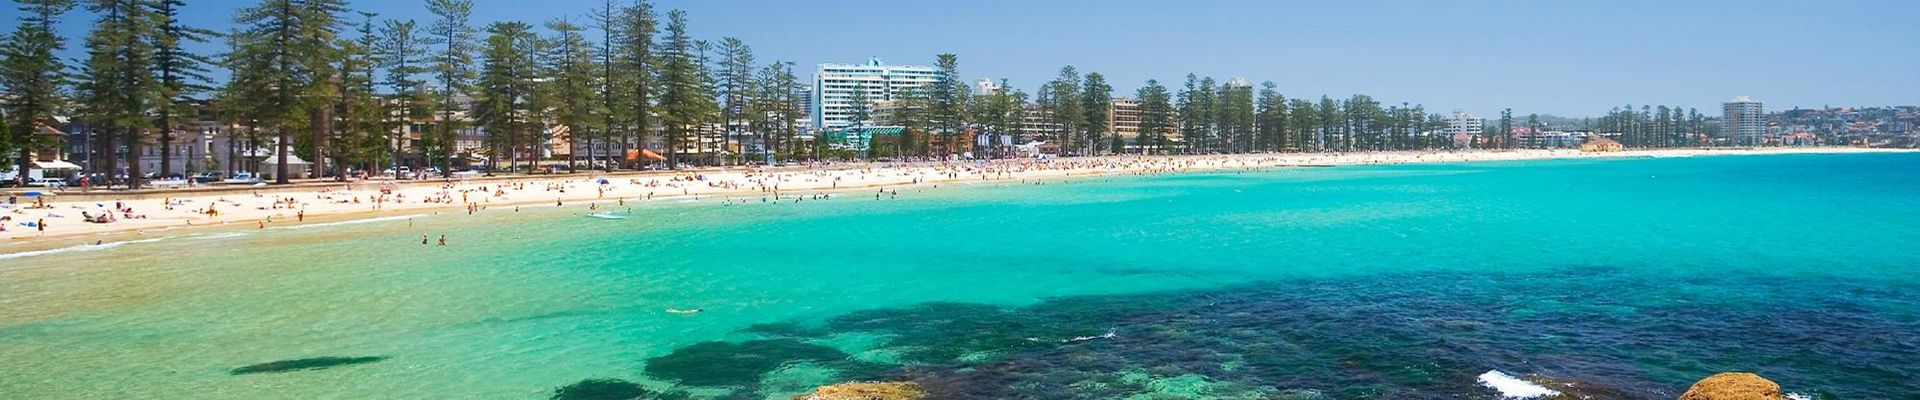 manly beach accommodation 1